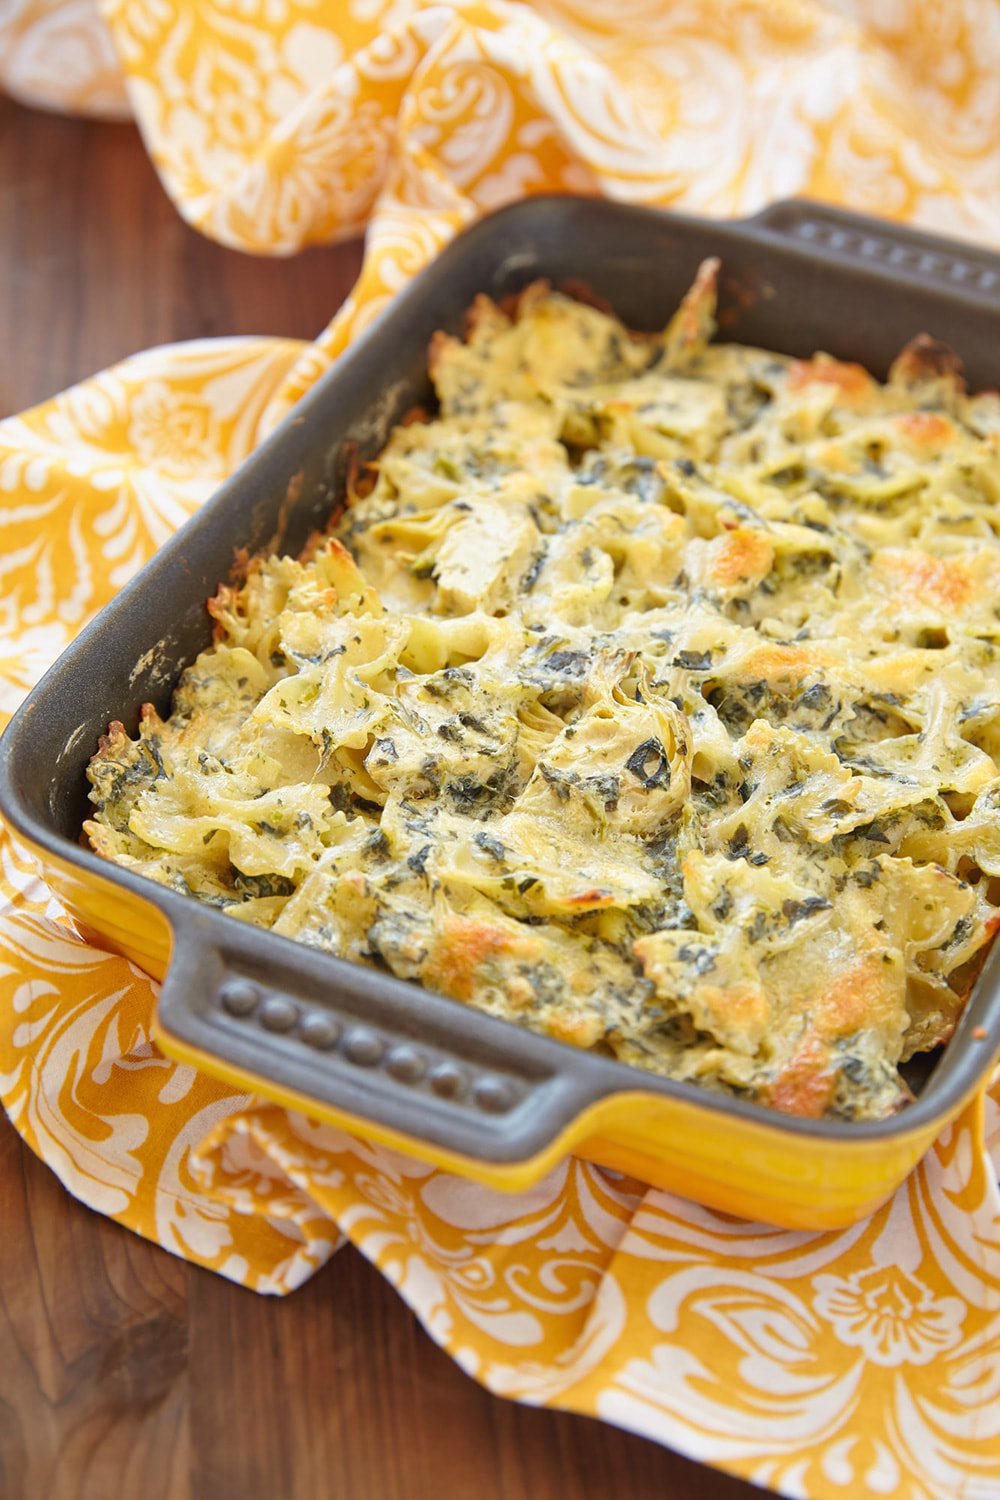 Healthy Spinach Artichoke Pasta in a baking dish with yellow napkin.